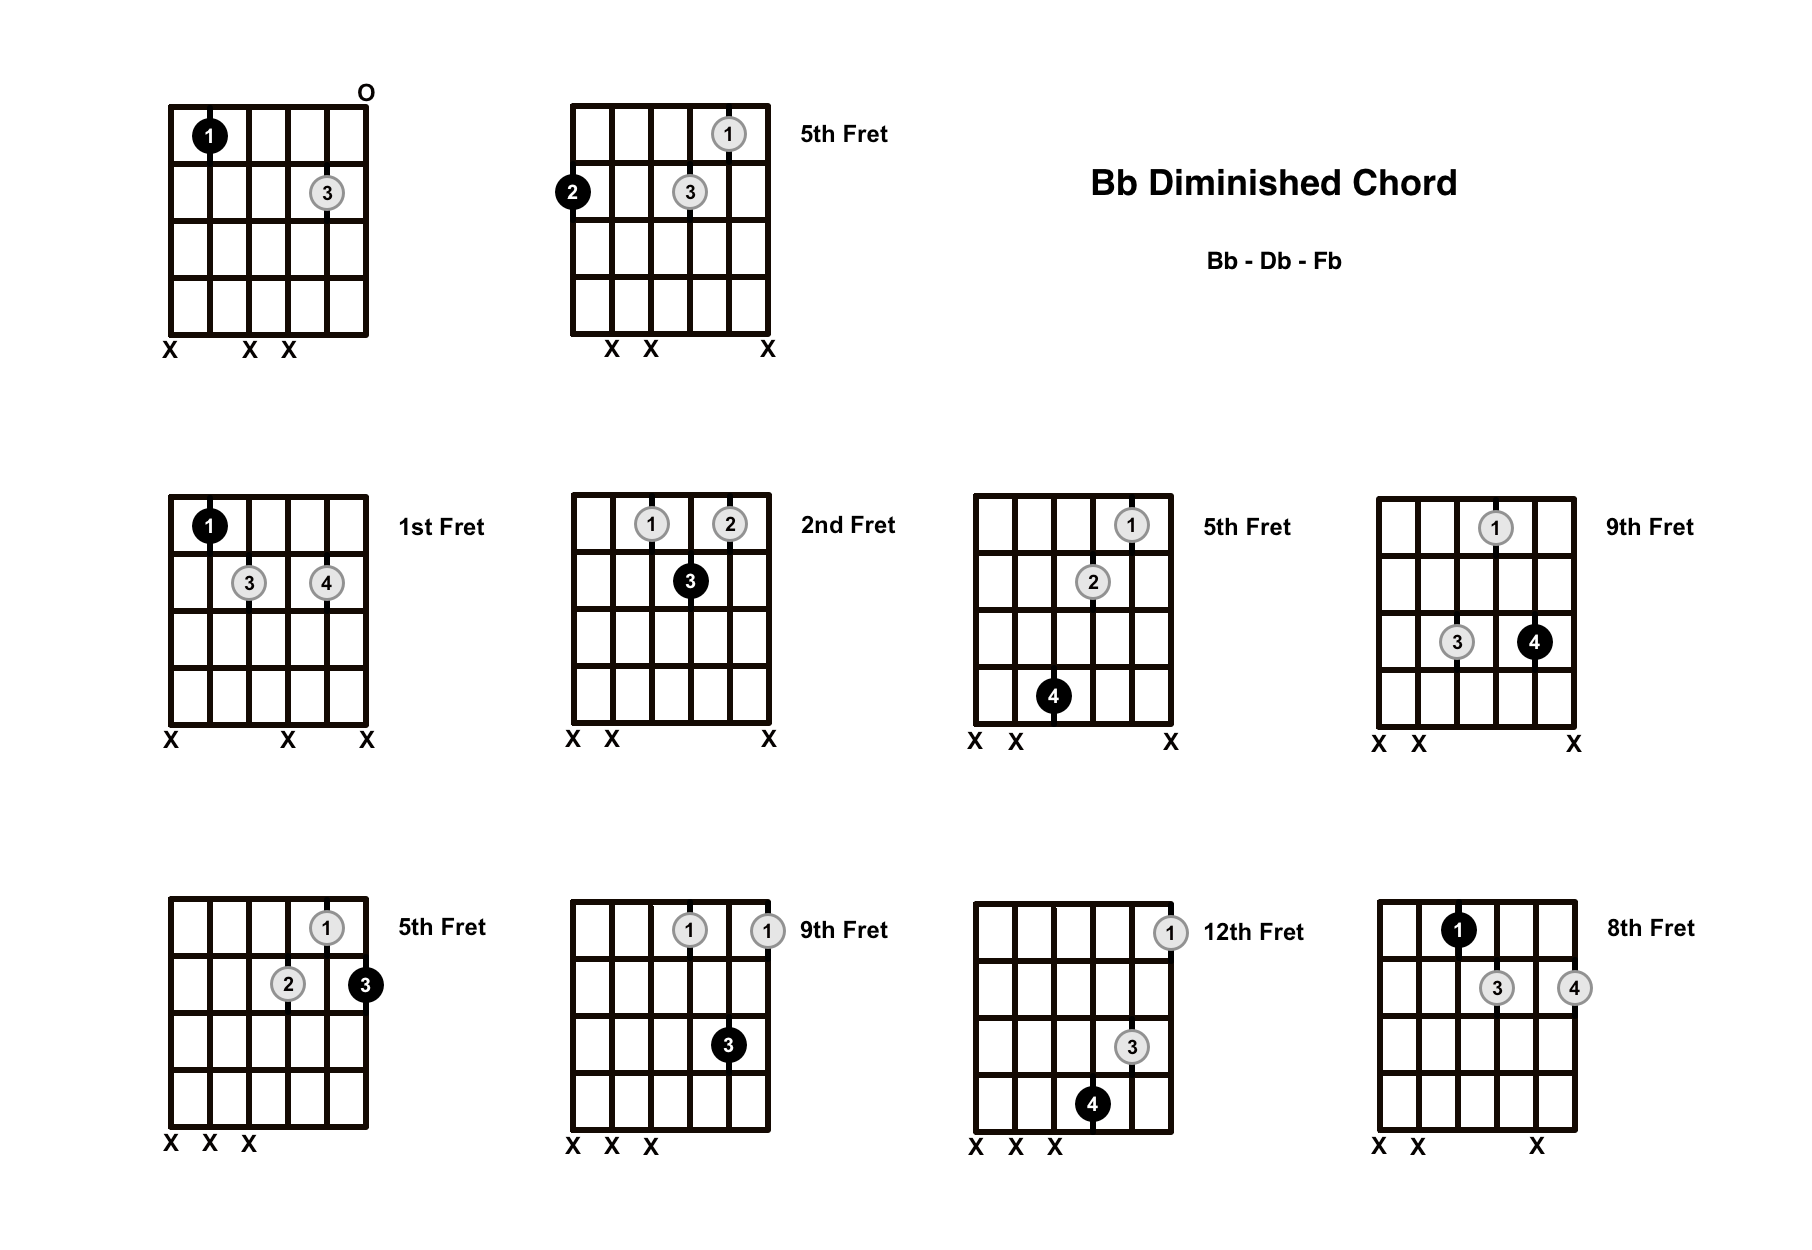 B Flat Diminished Chord on the Guitar (Bb dim) – Diagrams, Finger Positions, Theory